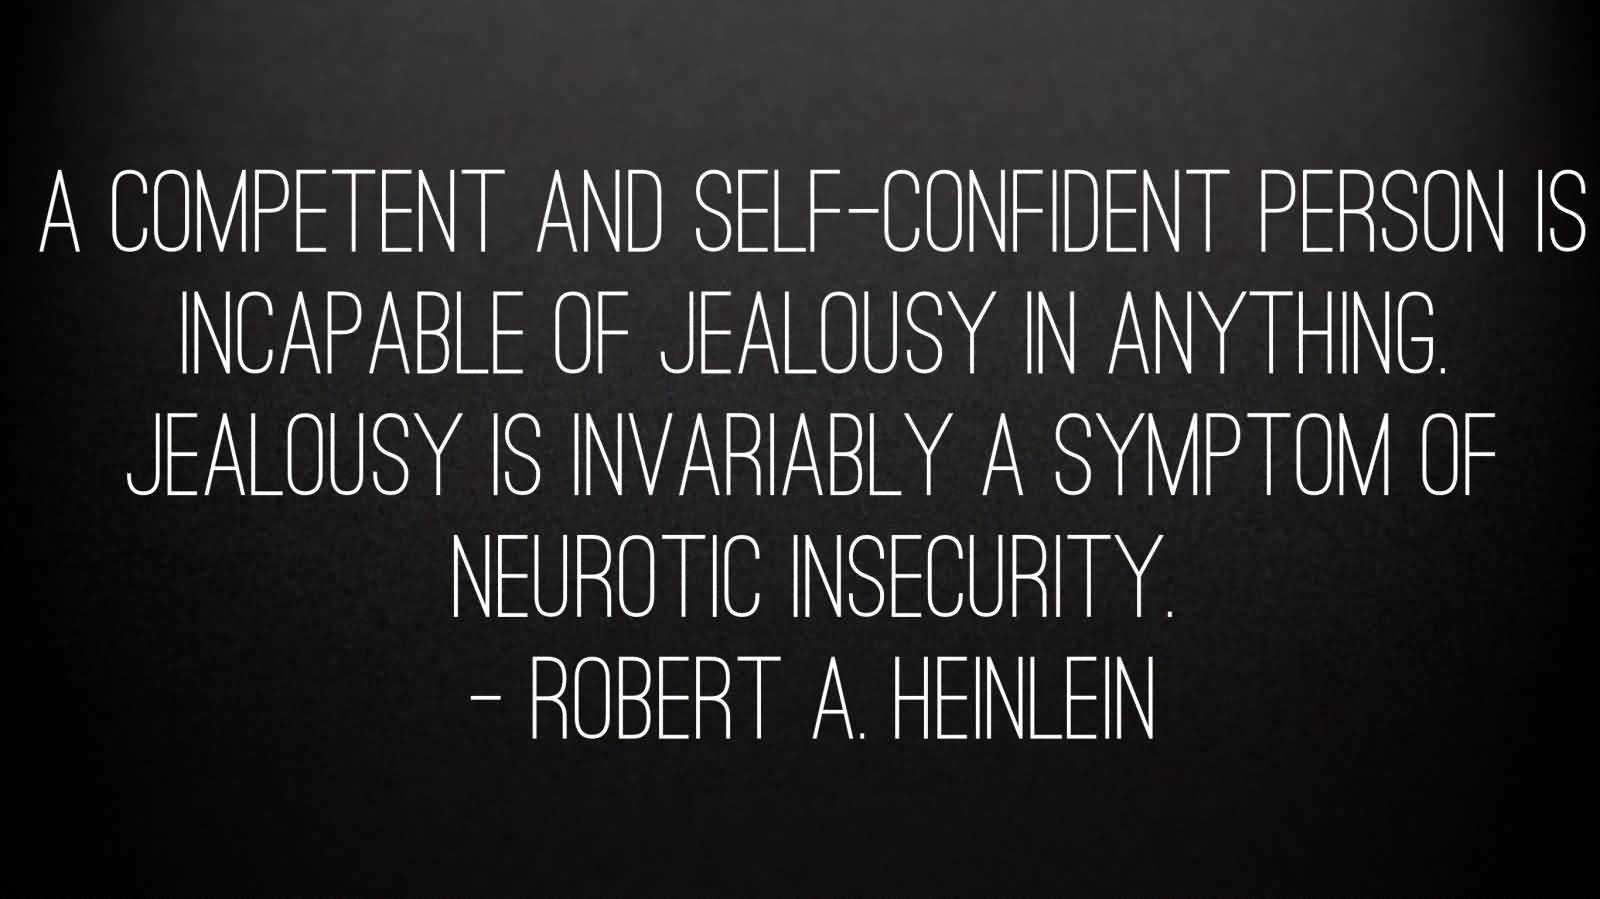 Love Obsession Quotes A Competent And Selfconfident Person Is Incapable Of Jealousy In